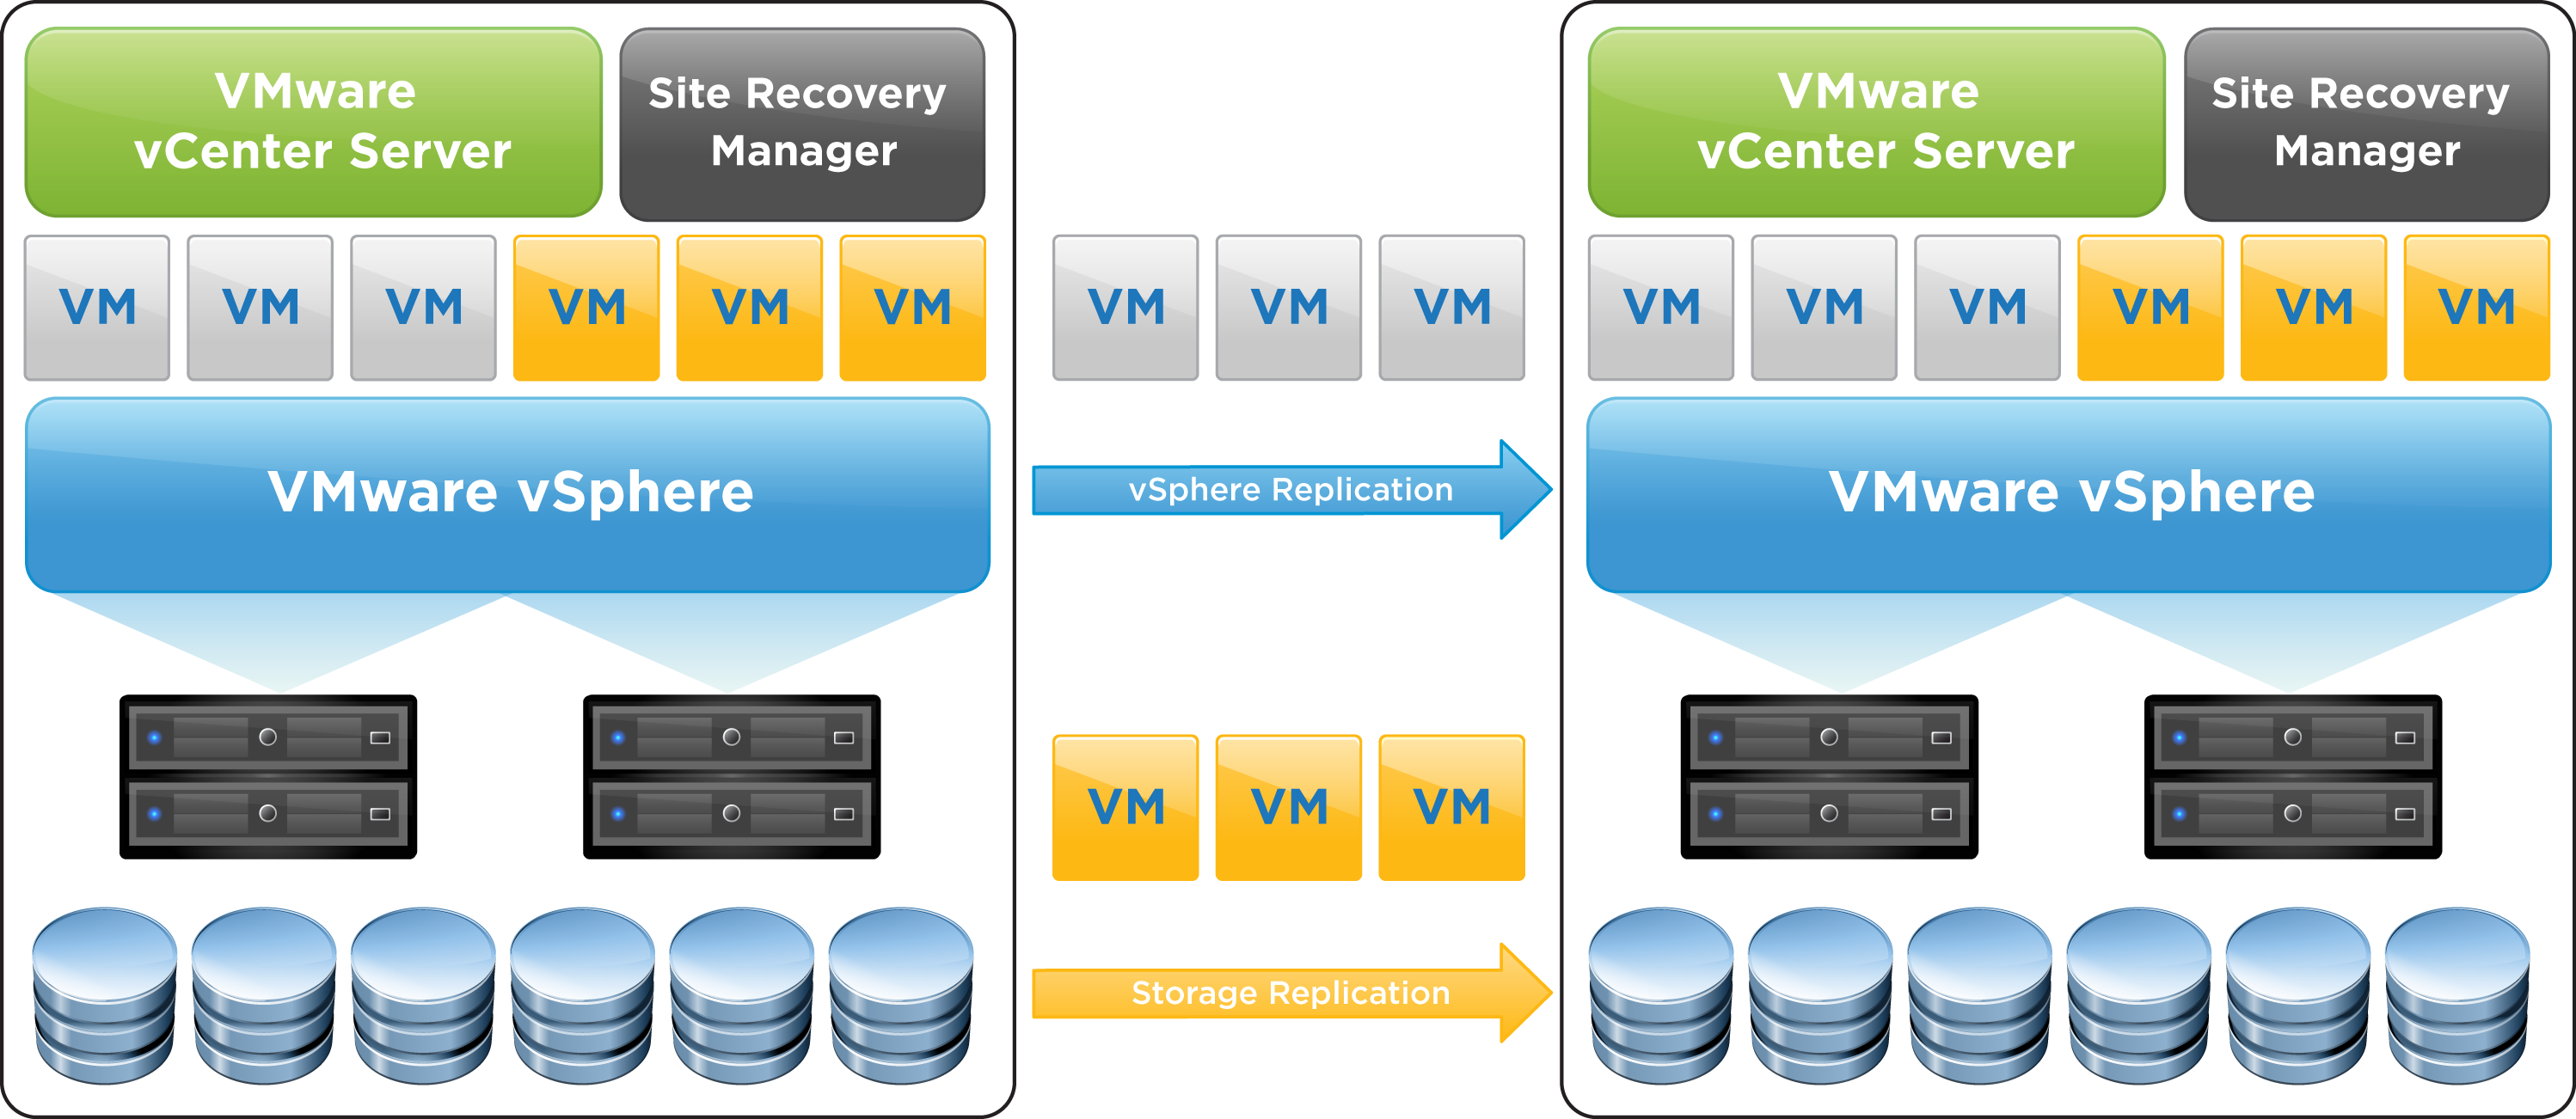 Building A Disaster Recovery Solution Using Site Recovery